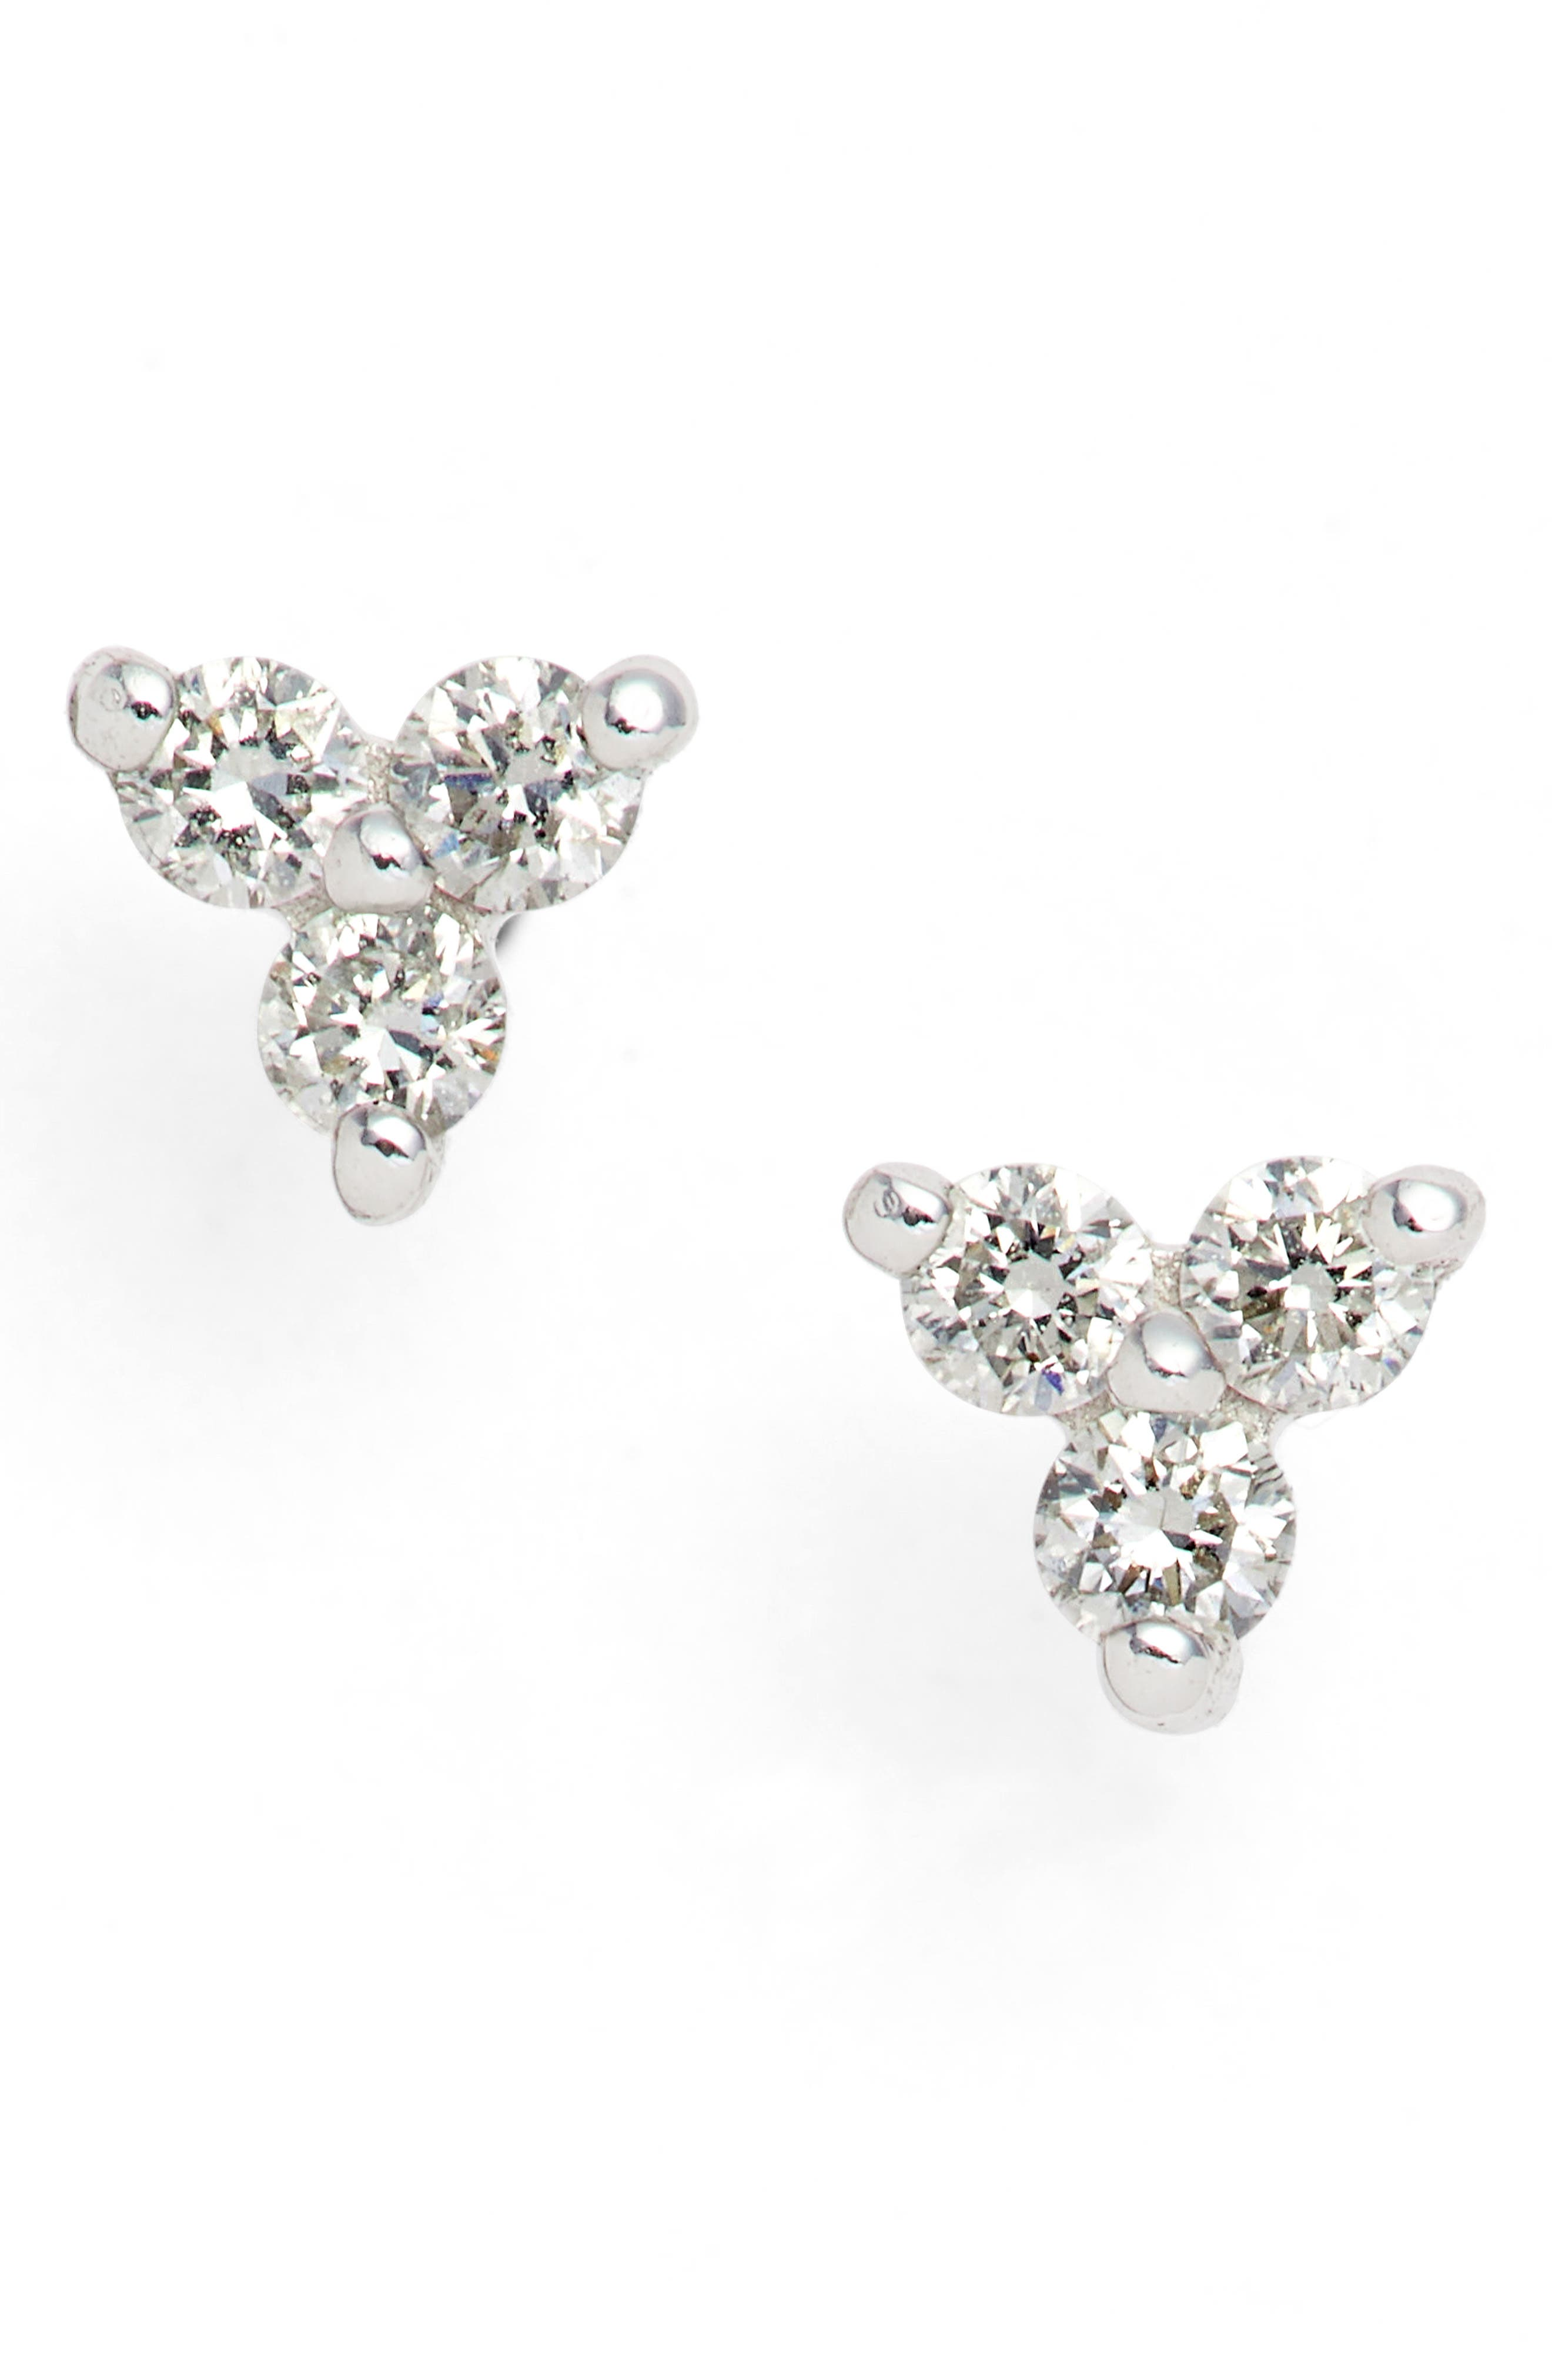 Main Image - Bony Levy Liora Diamond Stud Earrings (Nordstrom Exclusive)